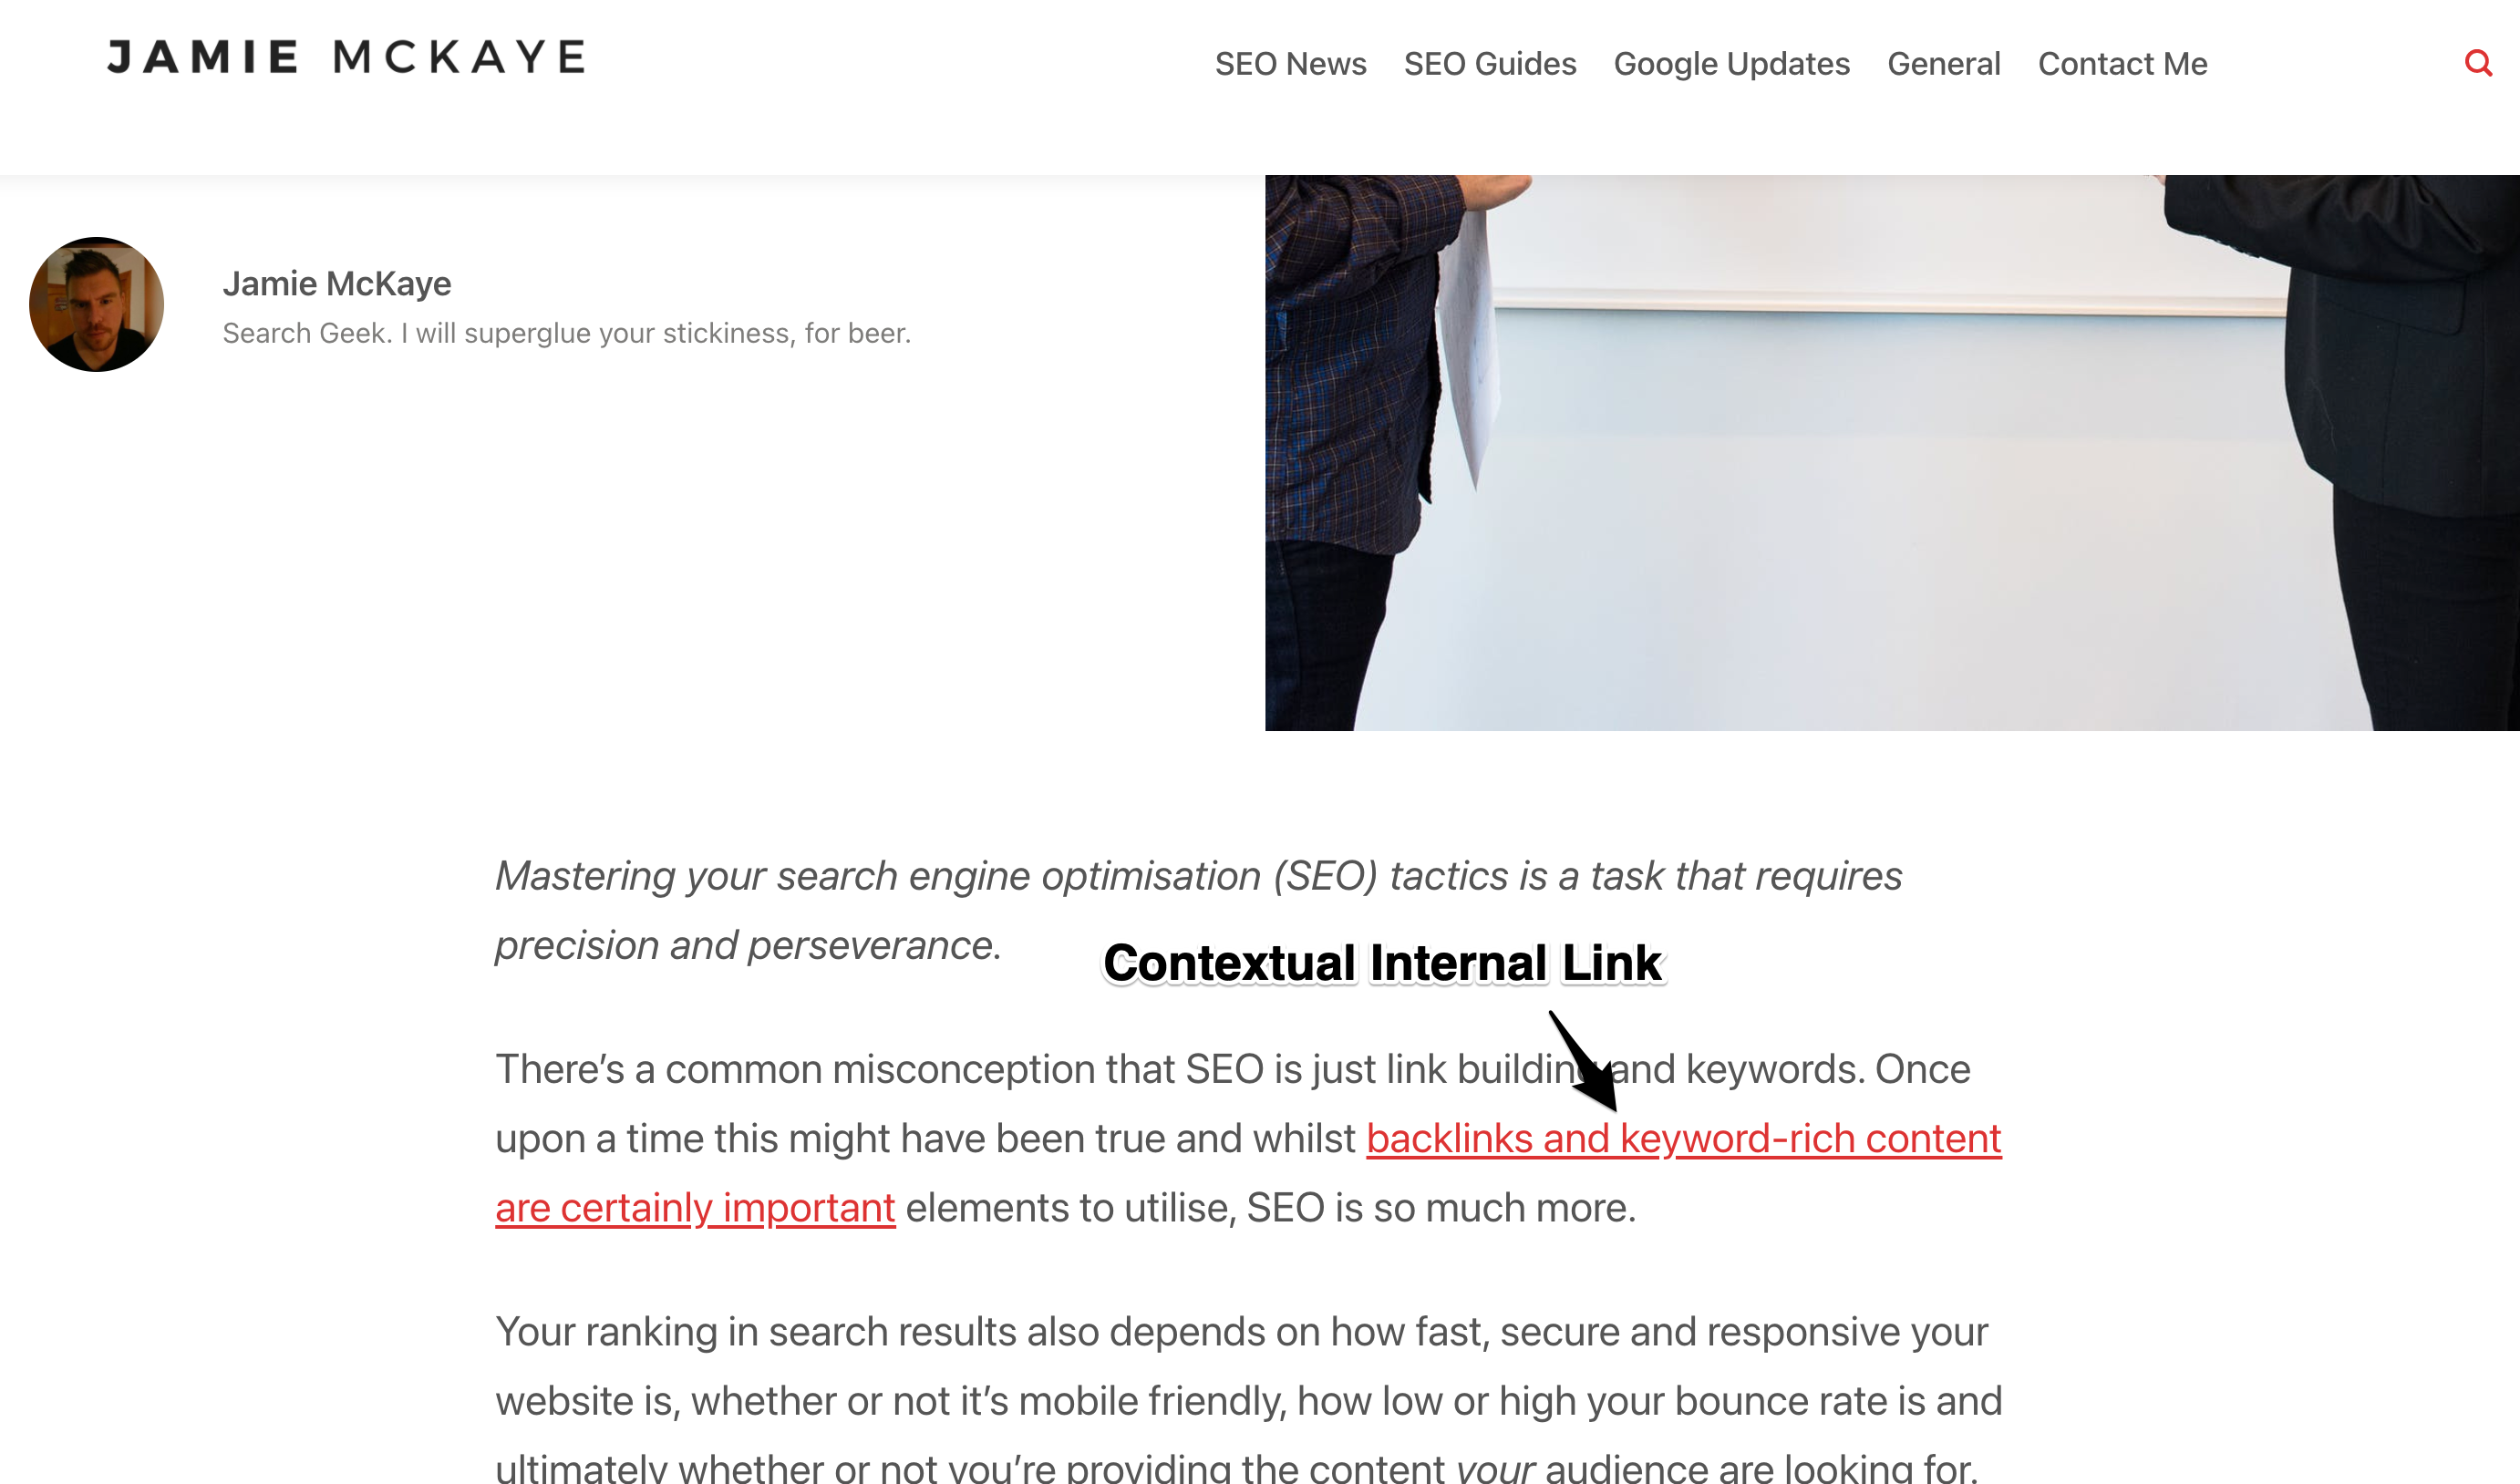 Example of a contextual internal link on a web page